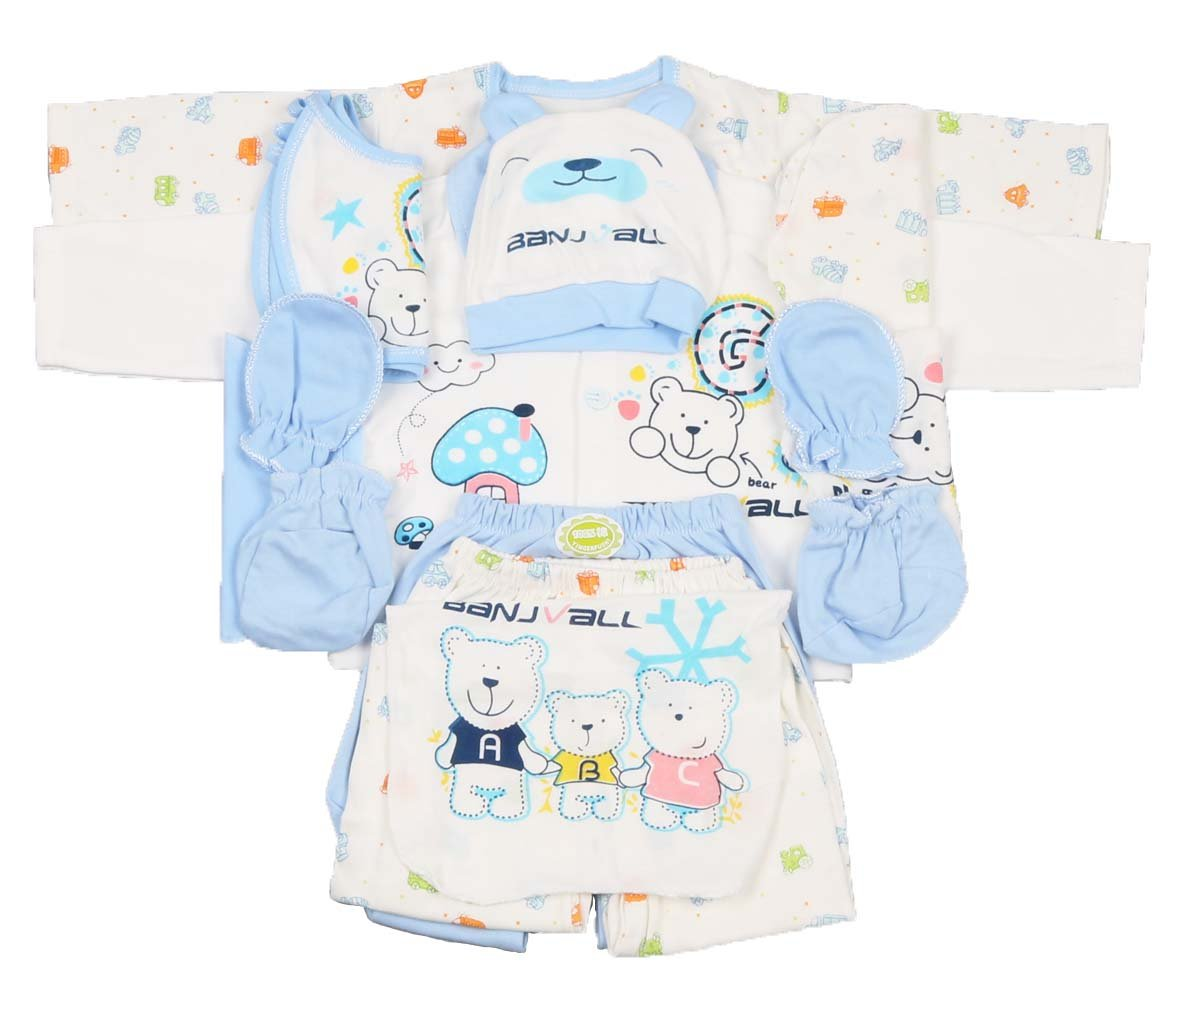 Peak Newborn Essential Clothes 18pcs Unisex-Baby Layette Gift Set 0-3M Peak-Peak